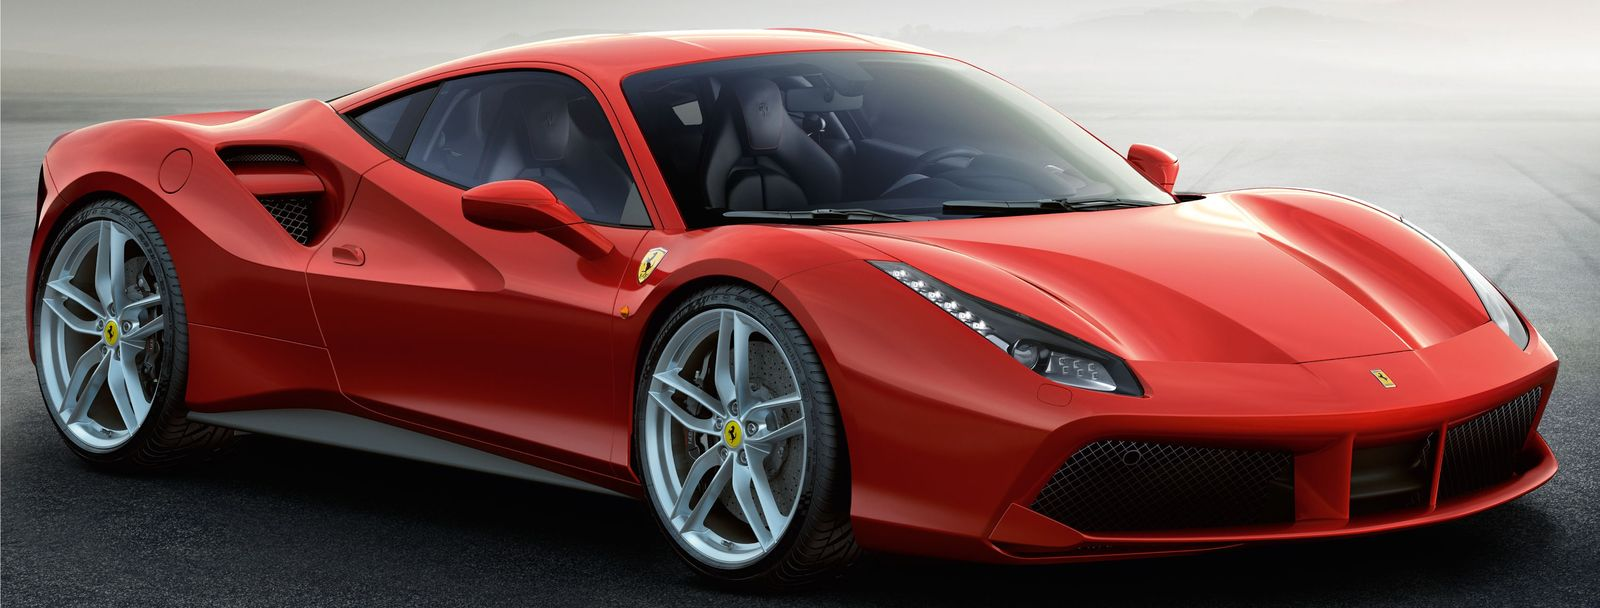 New 2015 Ferrari 488 GTB revealed – turbo replacement for 458 ...